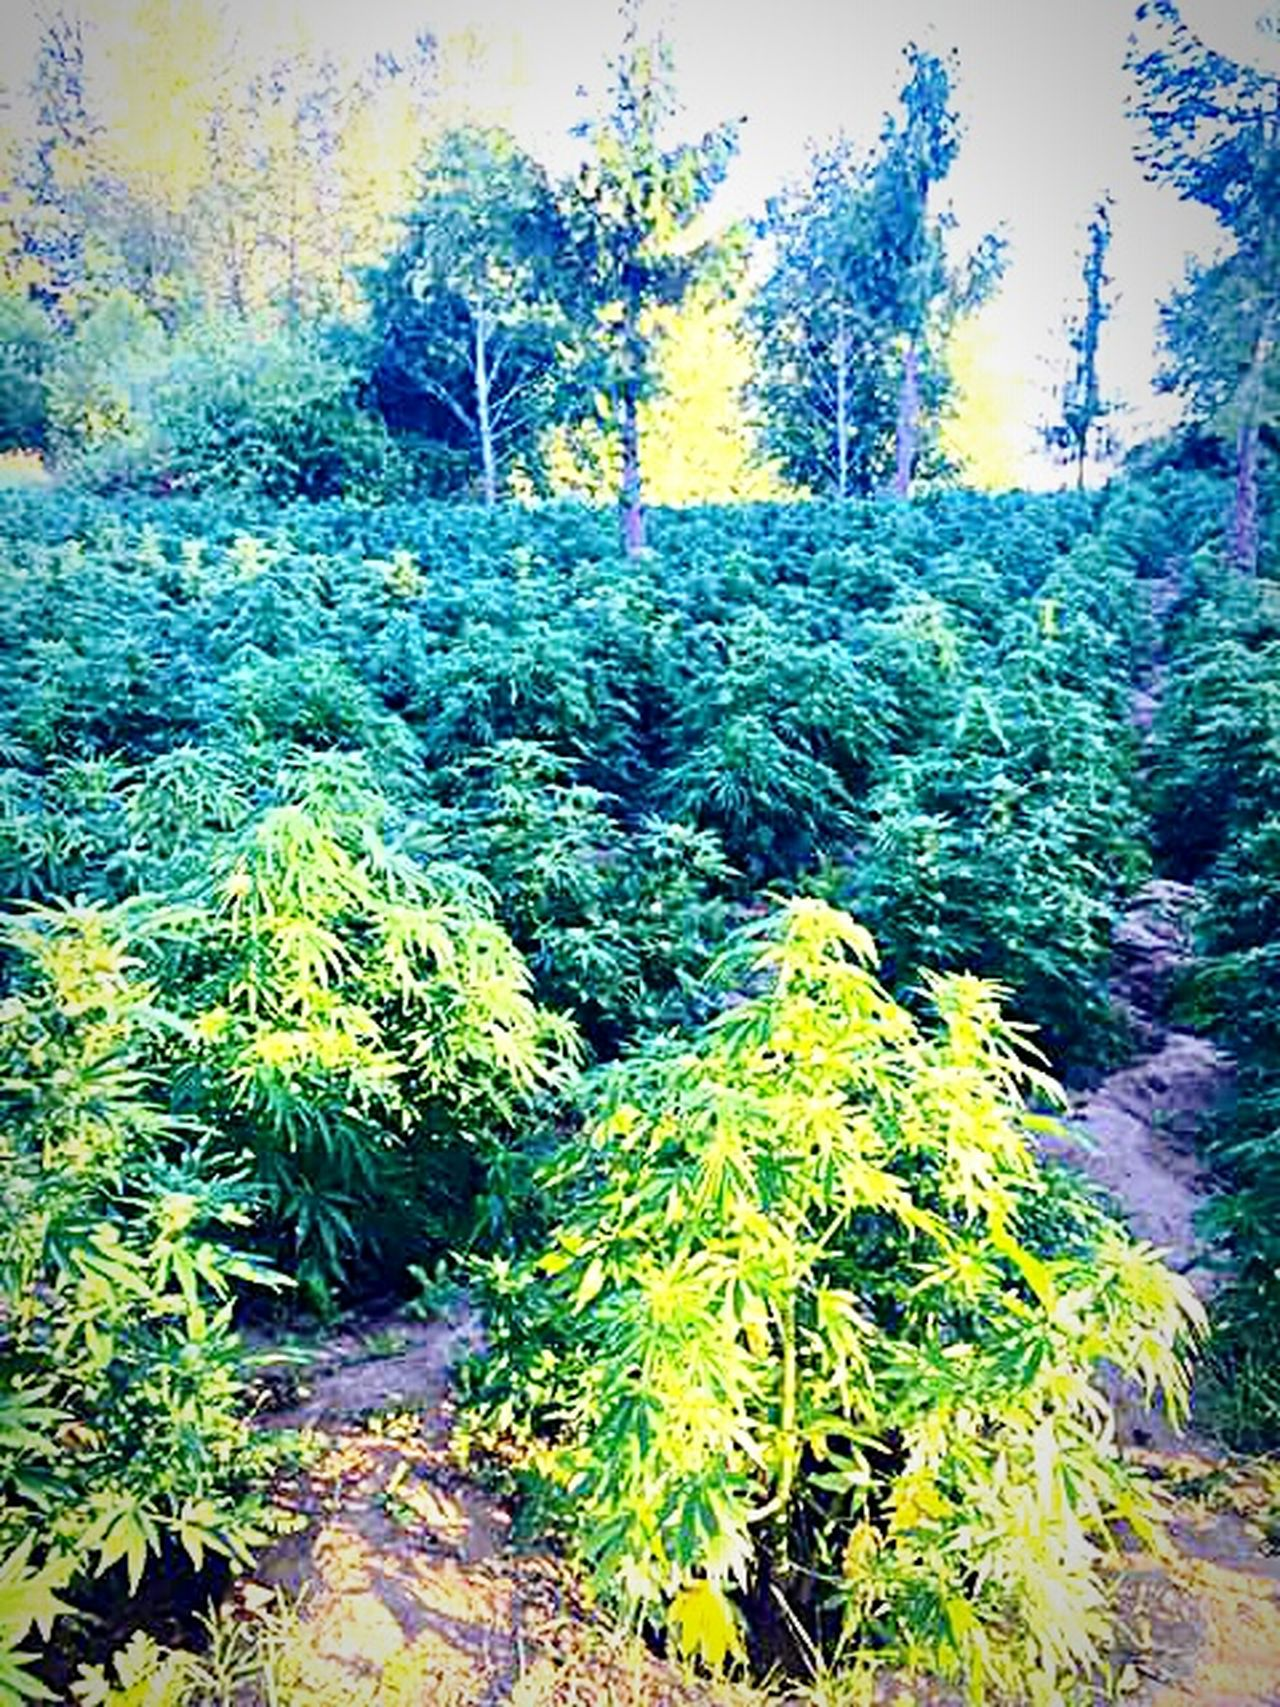 Growing Things Weed Life Potography Puff Puff Pass..  Smoke Dayumm Garden Of My Dreams Smoke's Love ♥ Farm Life My Garden My Wish All I See Is Smoke . Roll Up . Roll Up